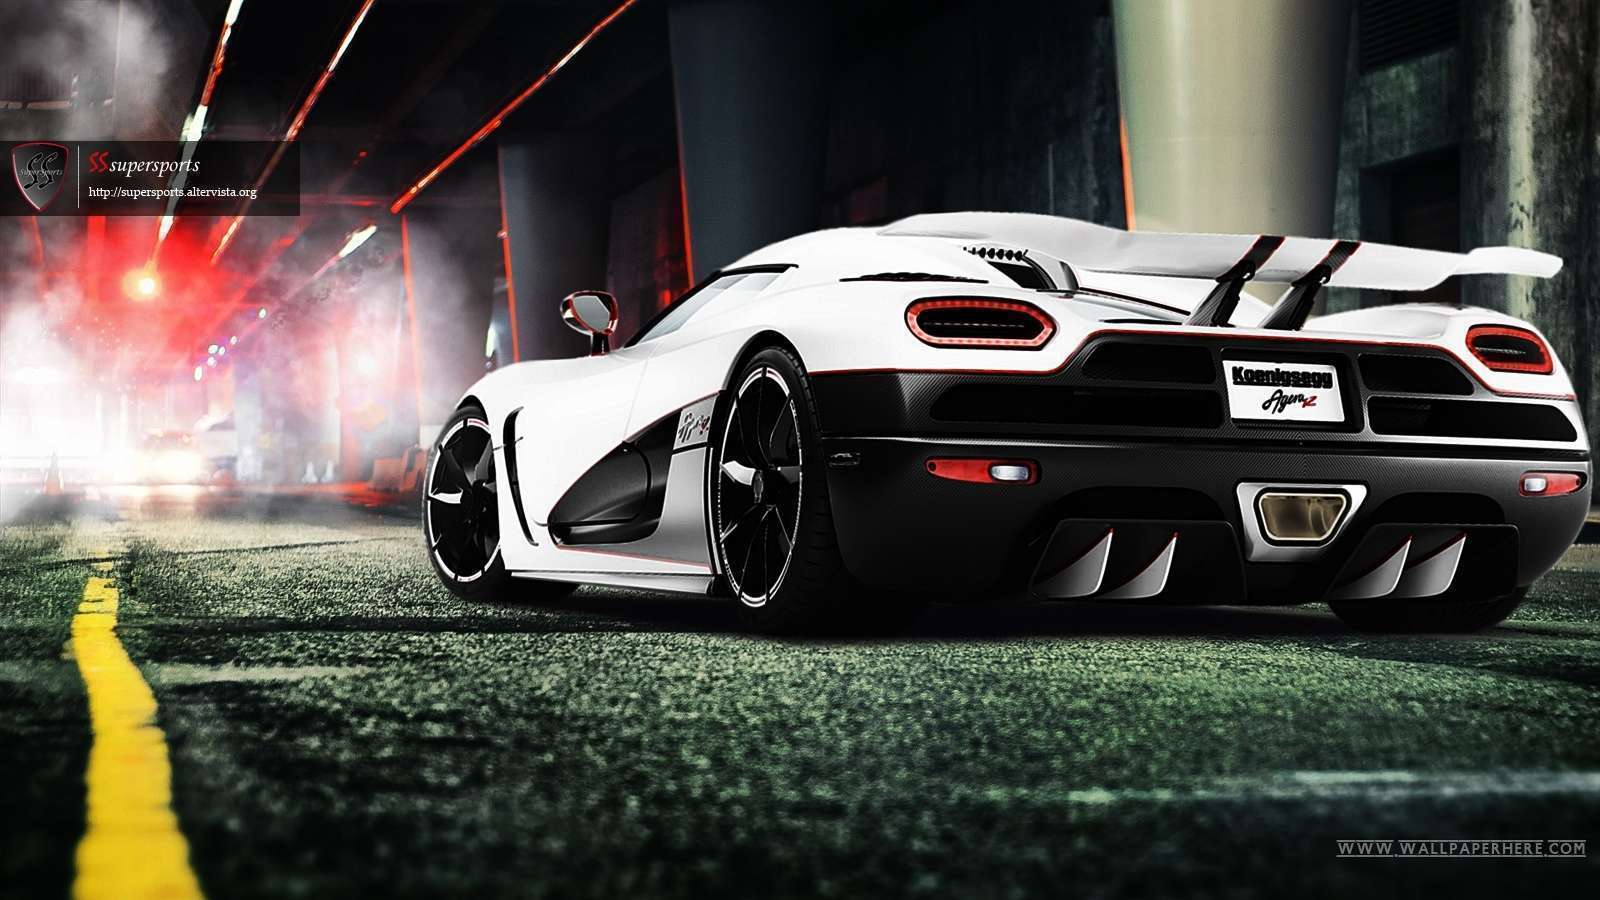 47 Koenigsegg Agera R Wallpaper Hd On Wallpapersafari